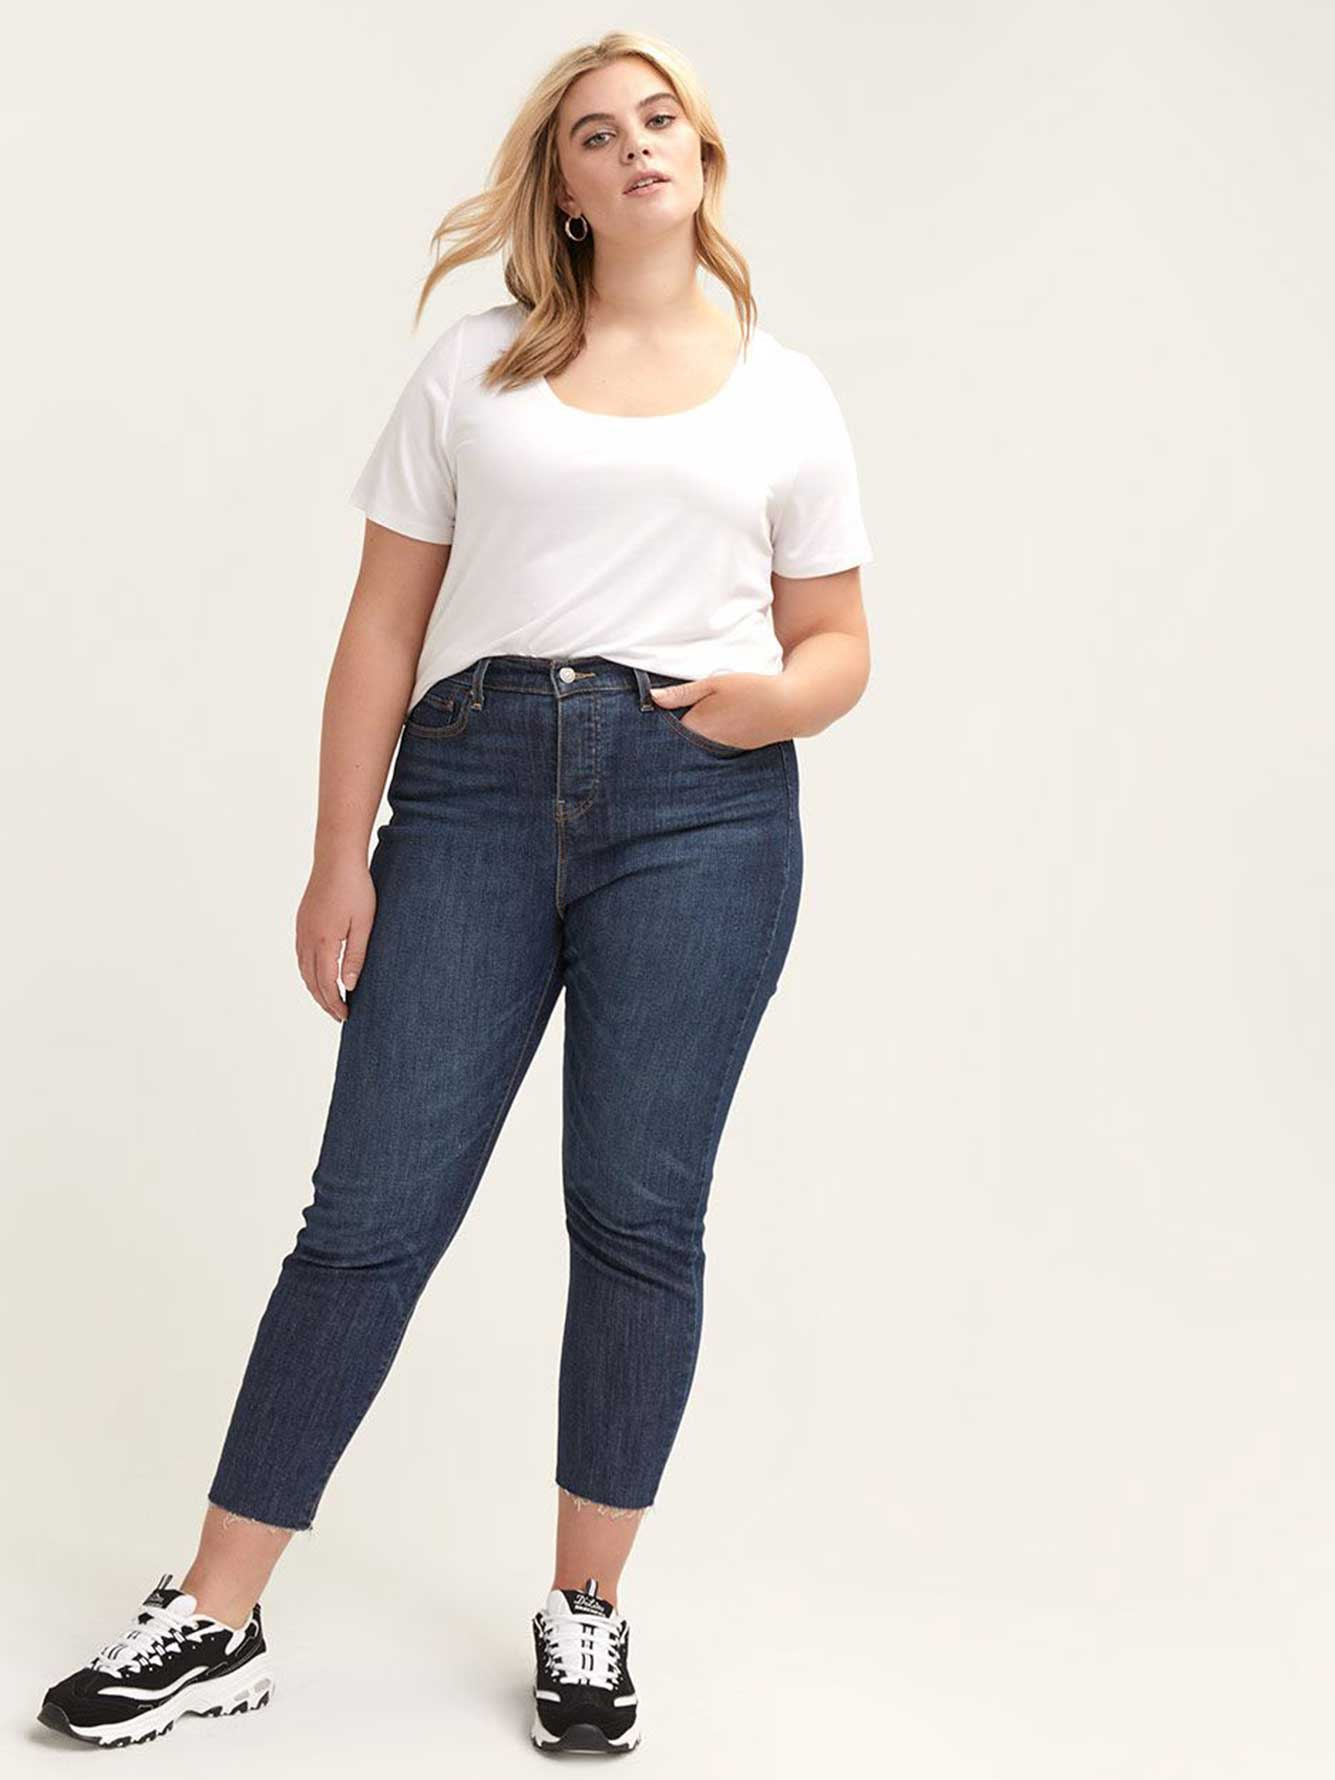 Skinny Levi's Wedgie From Block Jeans The rxoCedB